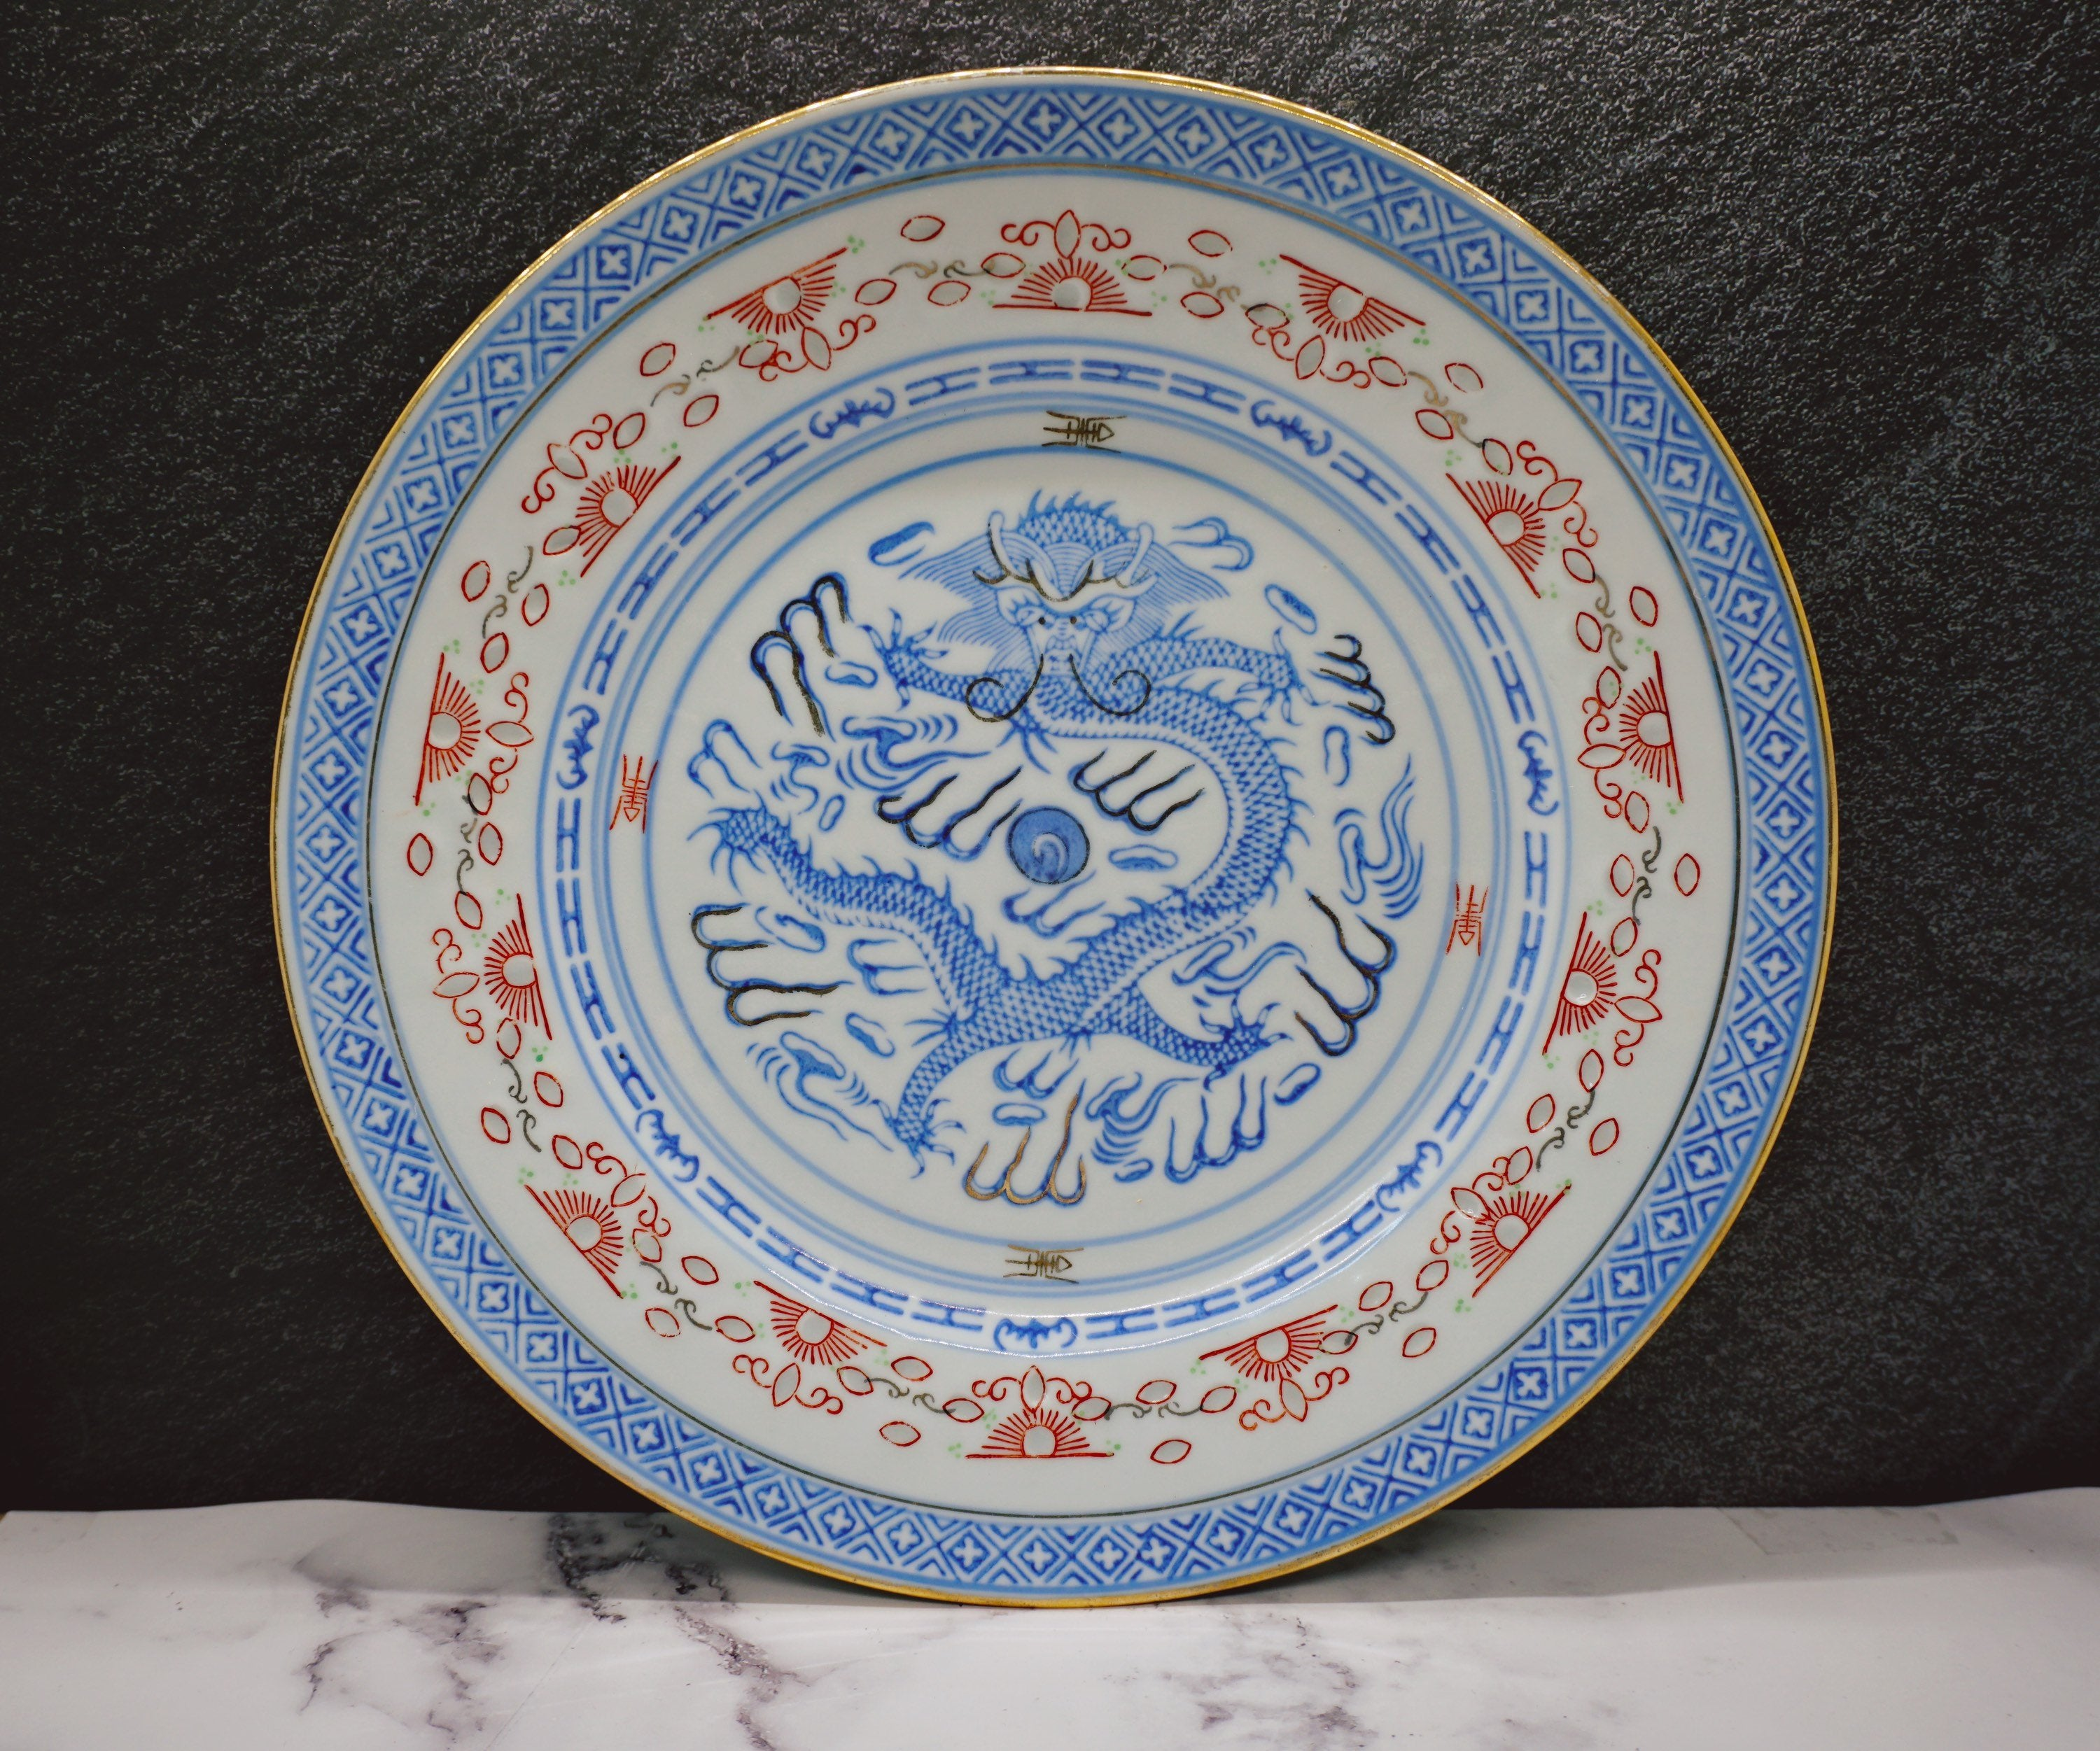 Vintage Chinese Dragon Motif Dinner Plate | Rice Grain Pattern Porcelain Plate Made in Jingdezhen - Urban Nomad NYC